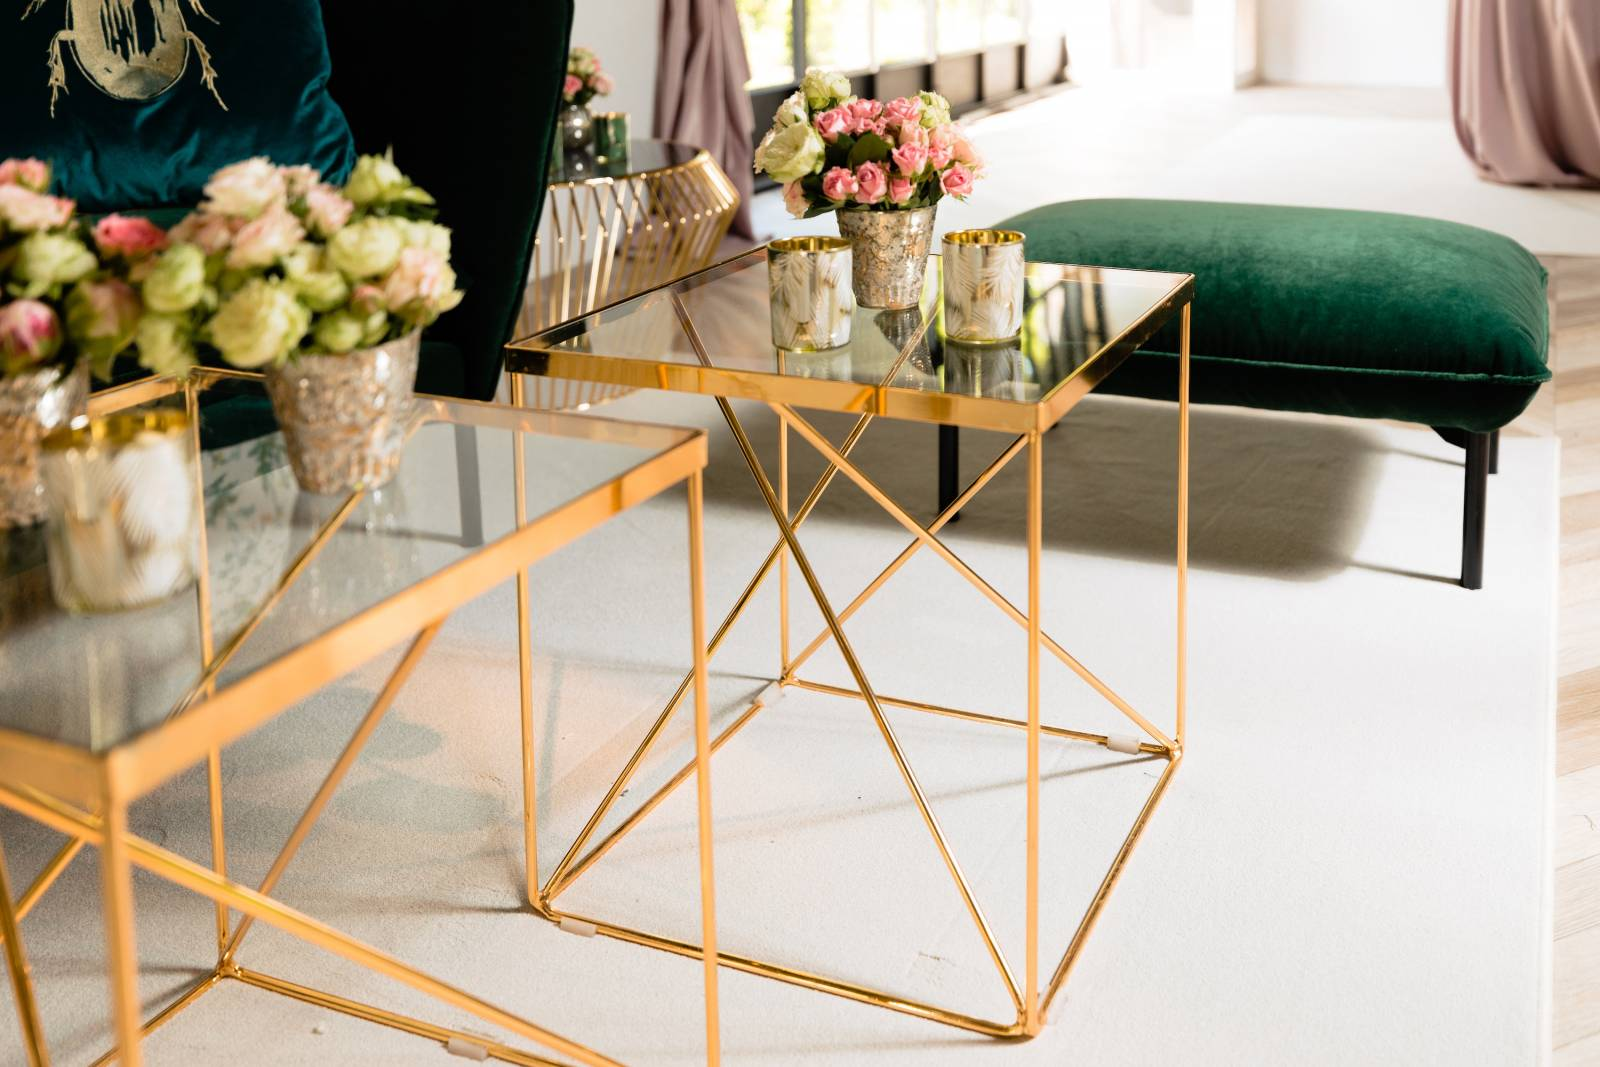 Be Your Guest - Wedding Planner - House of Weddings22-DETAILS-2019-Benoit Vos